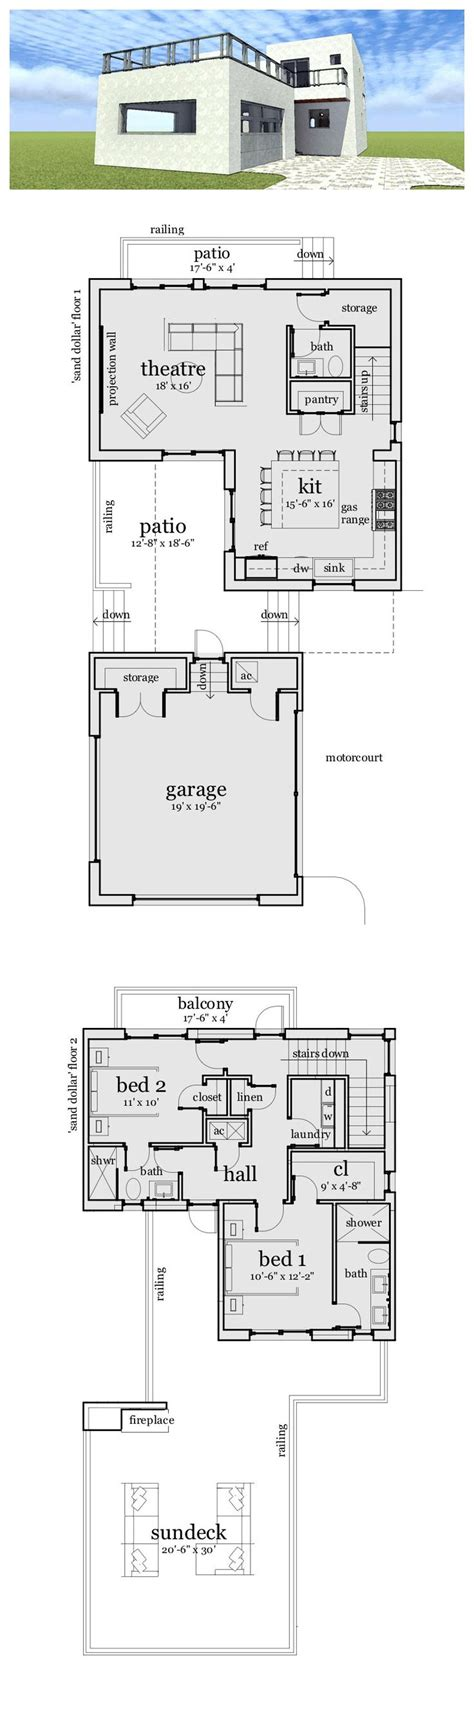 large luxury house plans 17 simple large luxury home plans ideas photo new at cute